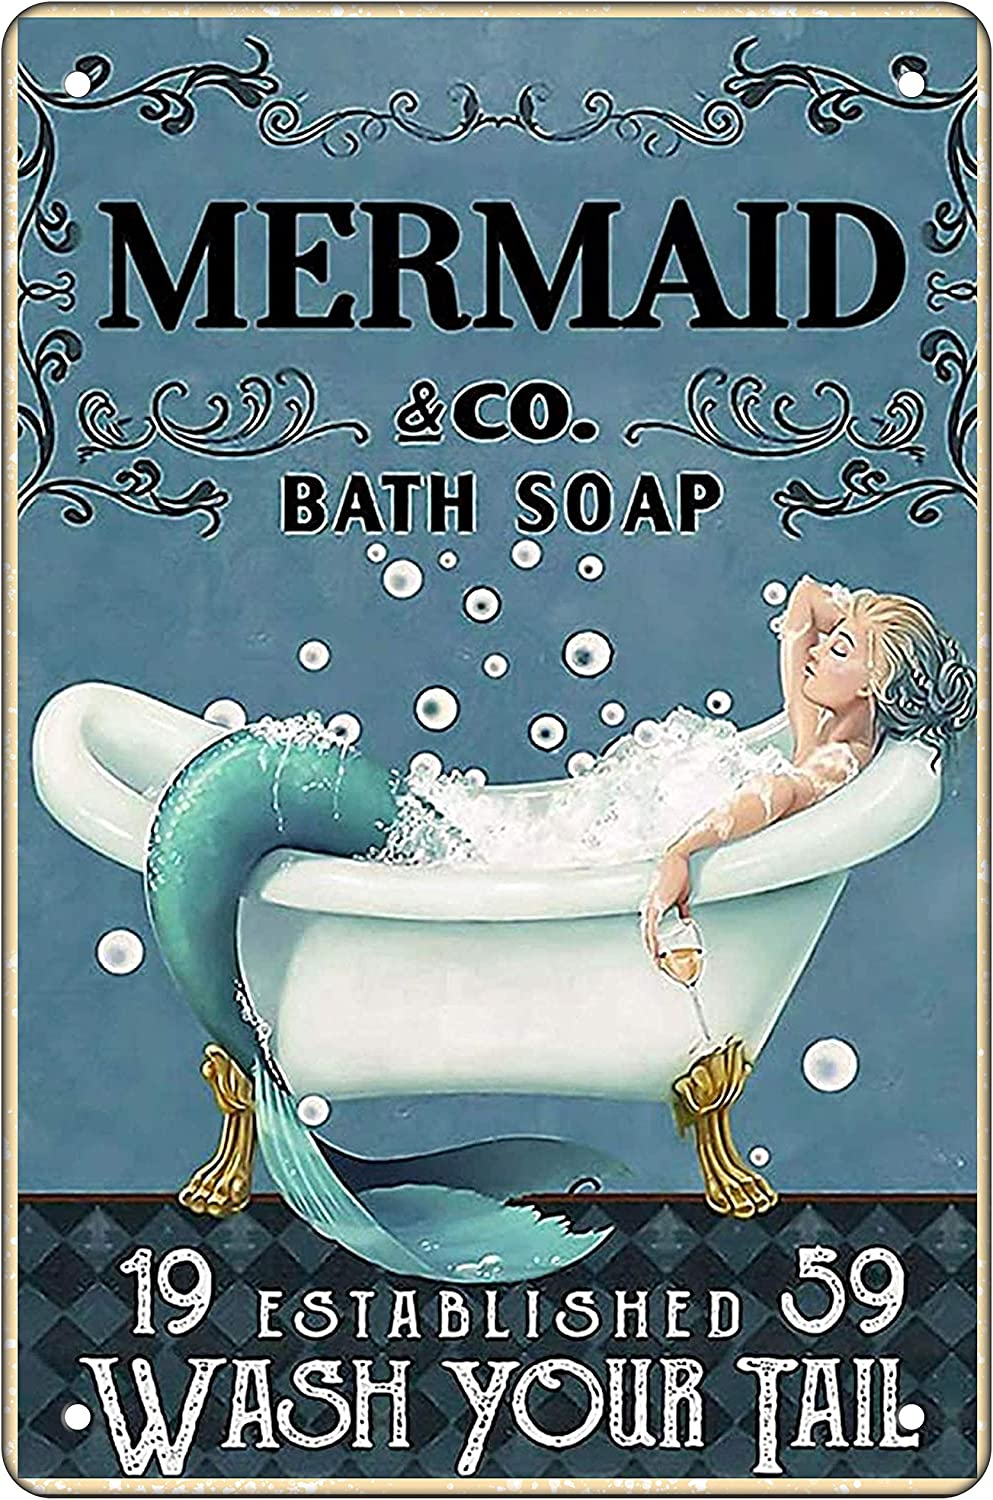 Funny Bathroom Metal Tin Sign Wall Decor Vintage Wash Your TailMermaid Tin Sign for Office Home Classroom Bathroom Decor Gifts Best Farmhouse Decor Gift Ideas for Friends 8x12 Inch